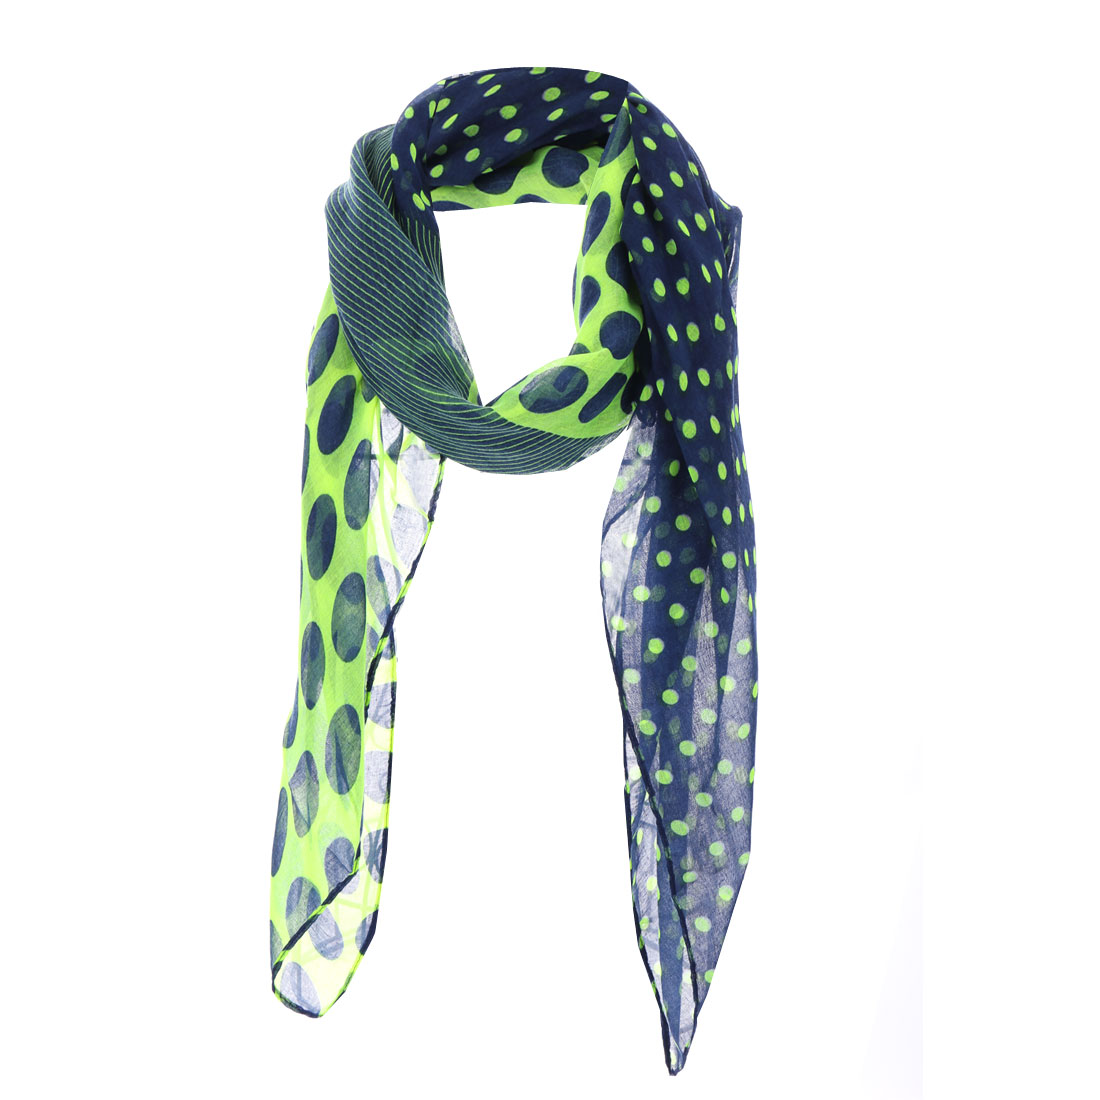 Girls Dots Pattern Semi Sheer Scarf Light Green Navy Blue